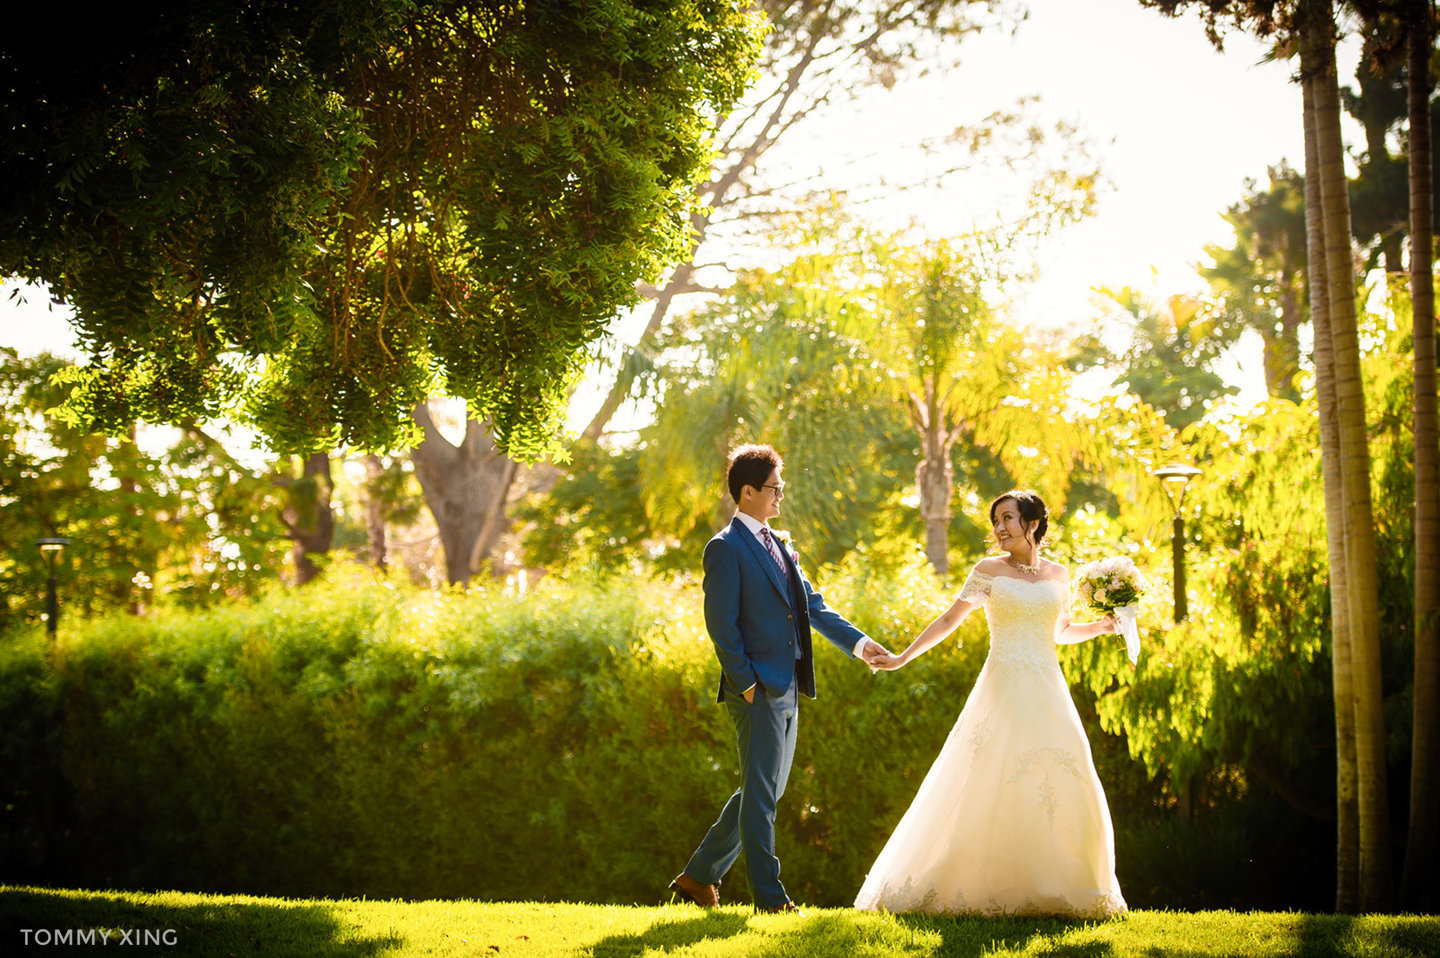 Paradise Point Resort Wedding Xiaolu & Bin San Diego 圣地亚哥婚礼摄影跟拍 Tommy Xing Photography 洛杉矶婚礼婚纱照摄影师 077.jpg